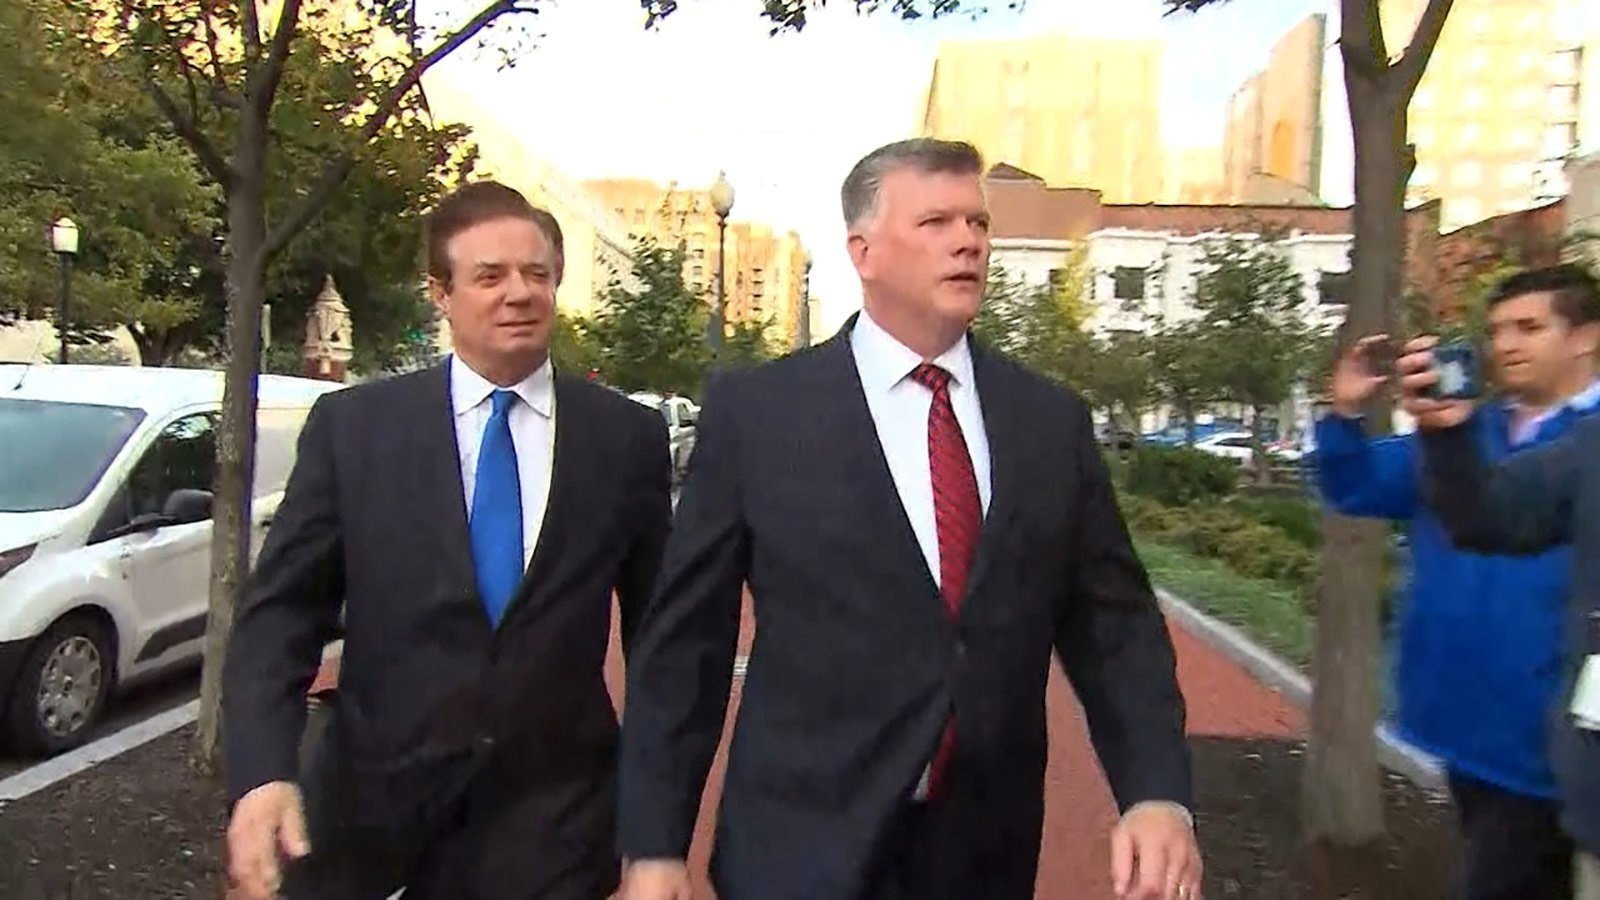 Former Trump campaign chairman Paul Manafort has entered a plea of not guilty to charges of bank fraud and tax crimes in federal court in Alexandria, Virginia.